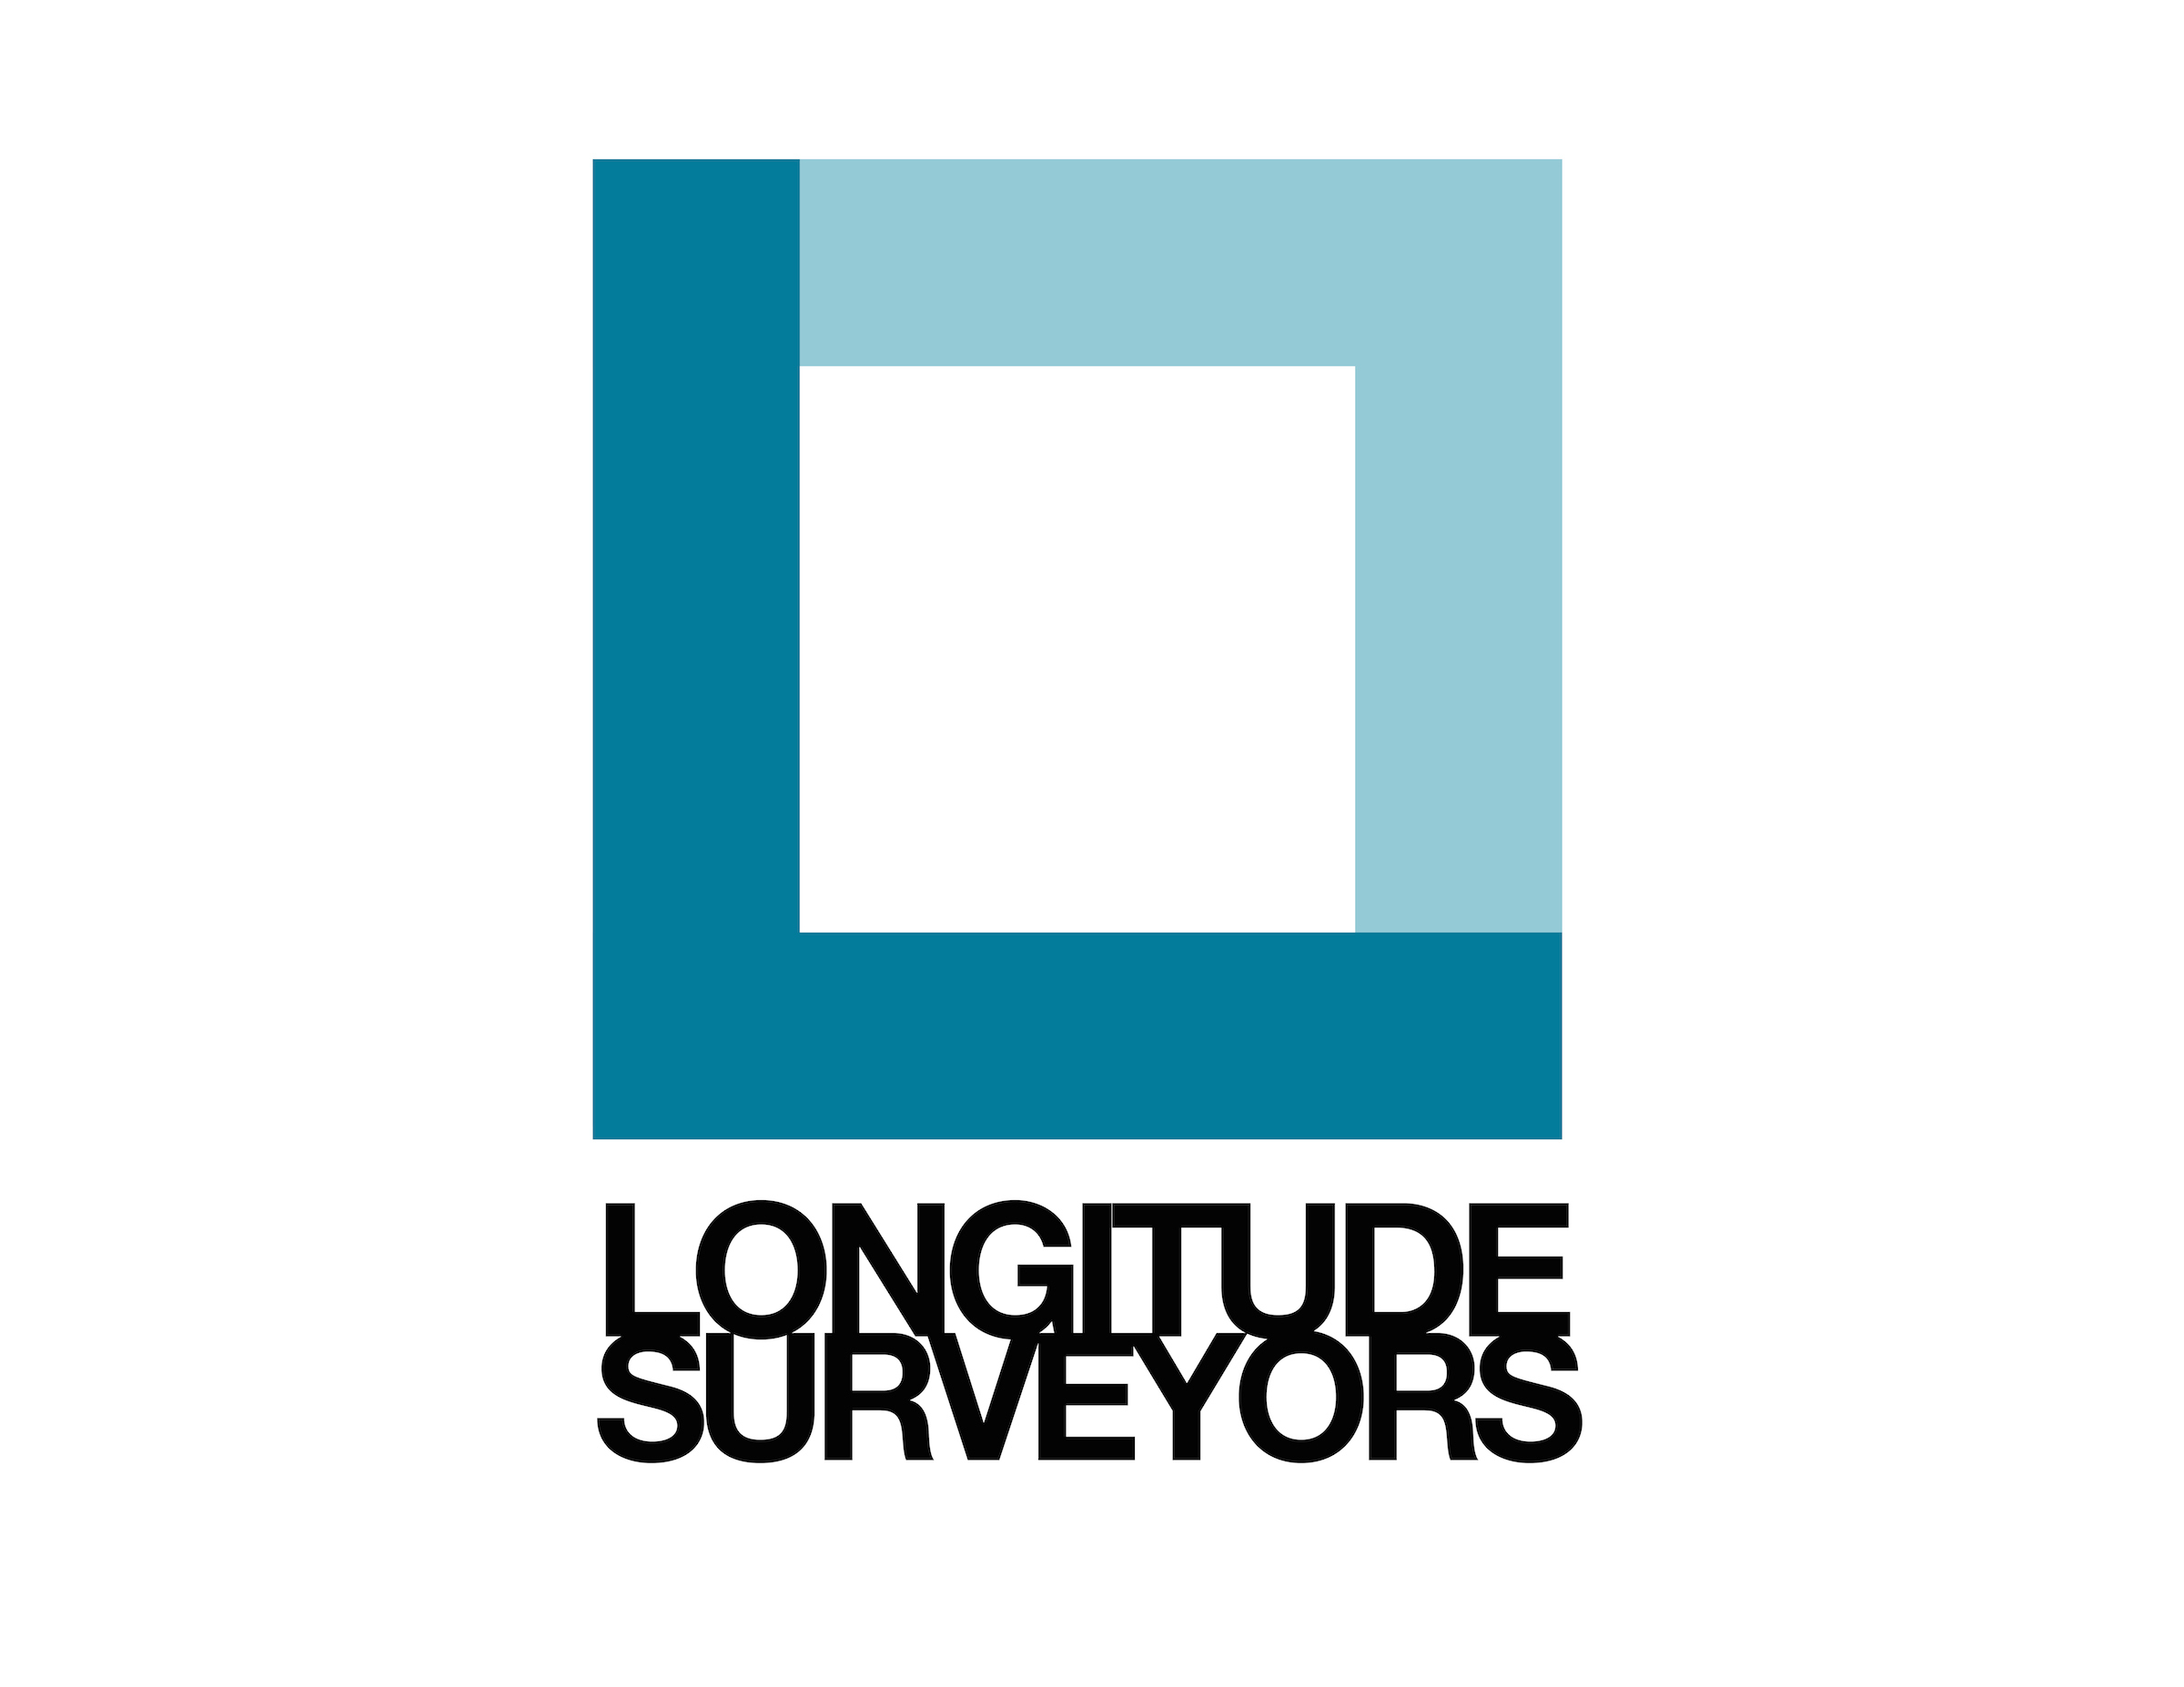 LONGITUDE LOGO small